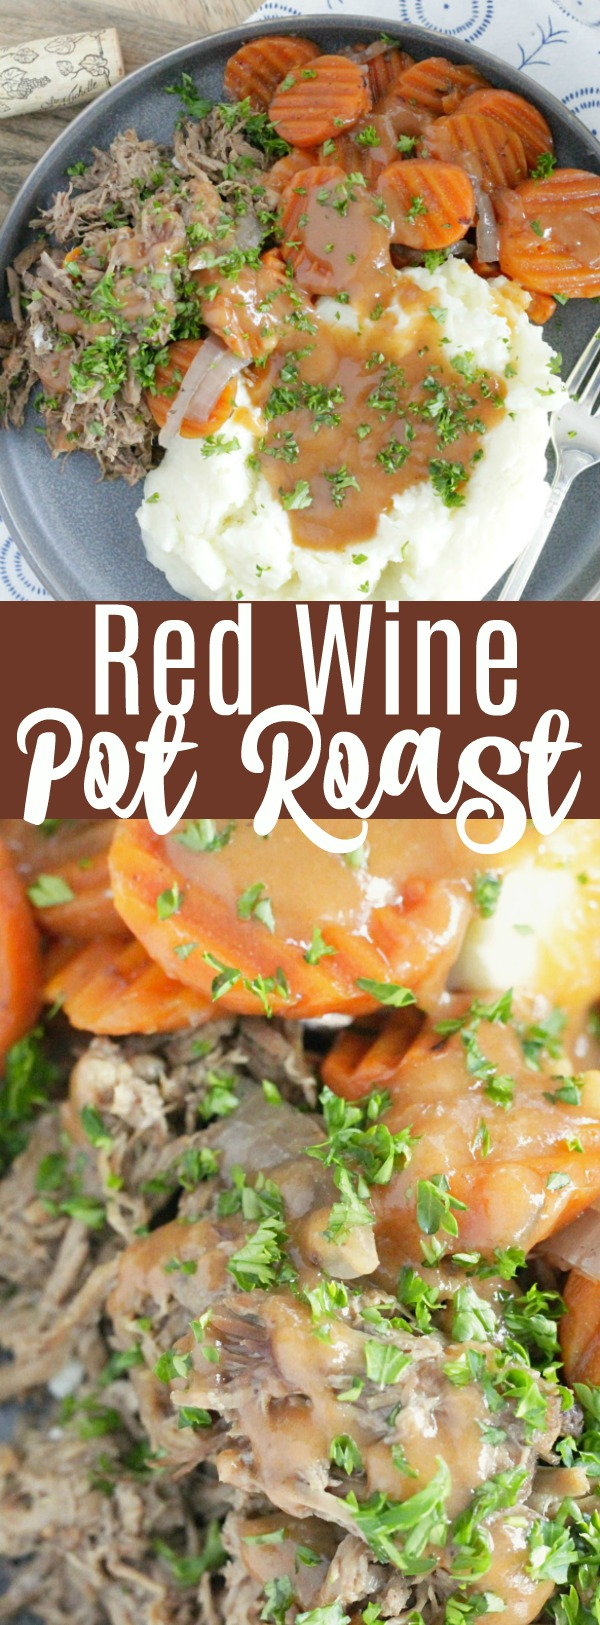 Slow Cooker Pot Roast with Red Wine | Foodtastic Mom